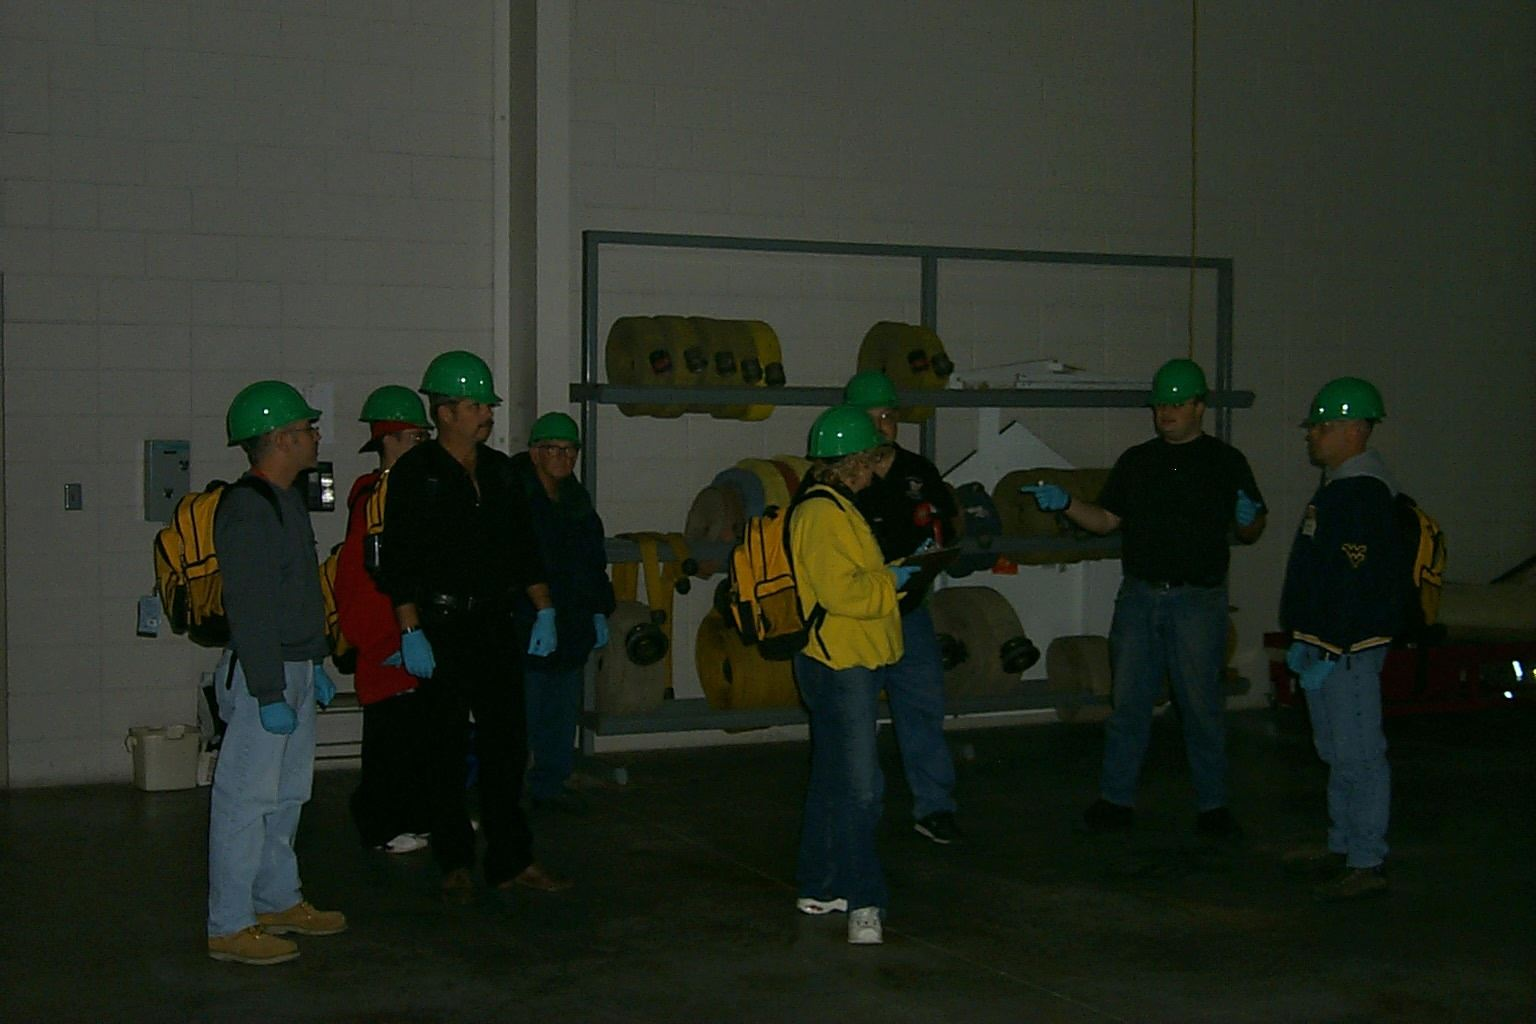 Group with Green Helmets